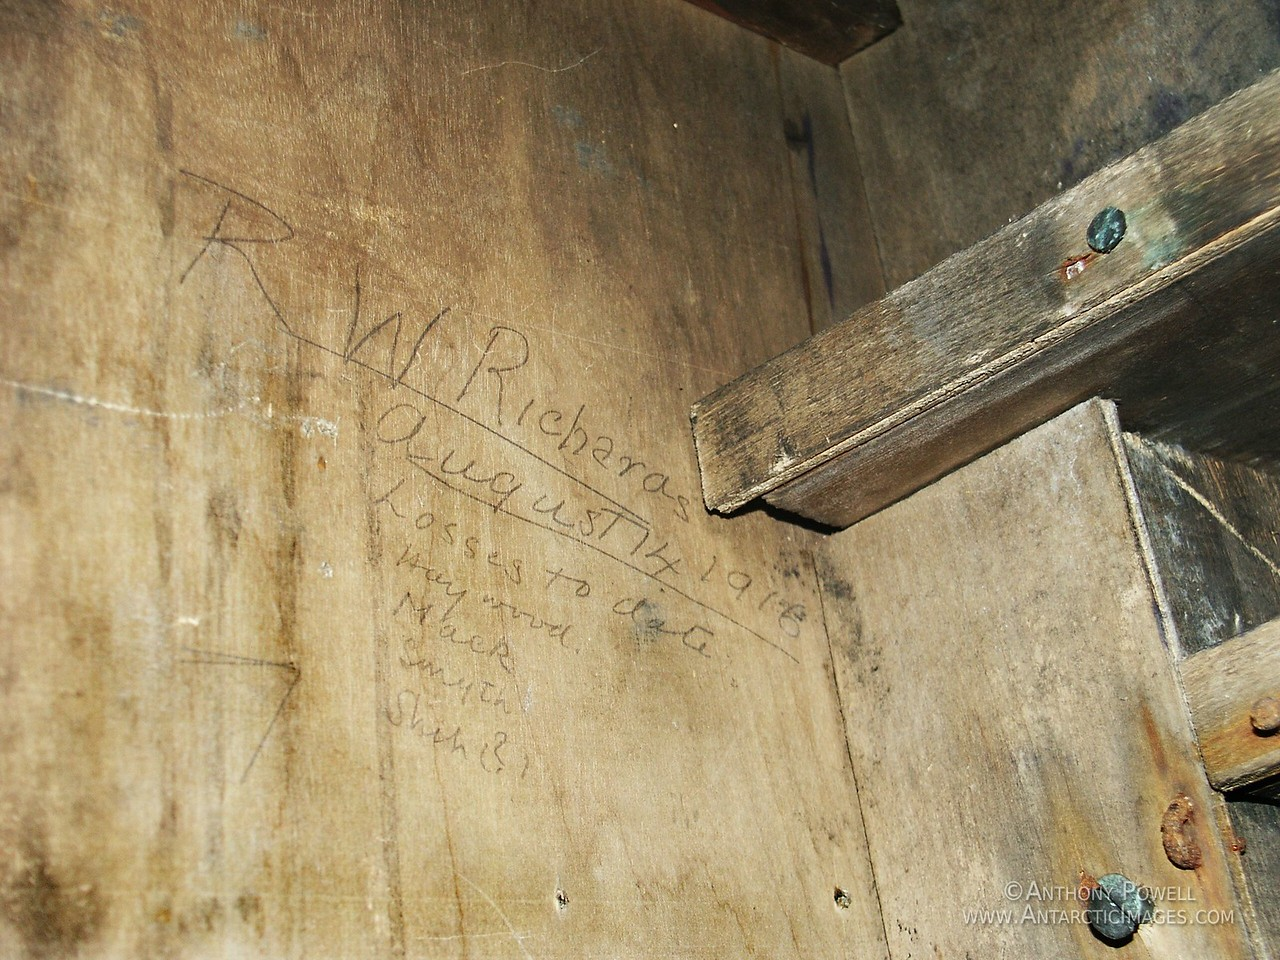 "Inscription on the wall ""Losses to date"" from 1916 under one of the bunks at the Cape Evans historic hut. These were Shackelton's ""Forgotten Men"" who were waiting for him to cross Antarctica, not knowing his ship had been crushed in the ice on the other side of the continent, hence the last name being an abbreviated Shackelton with a question mark after it."